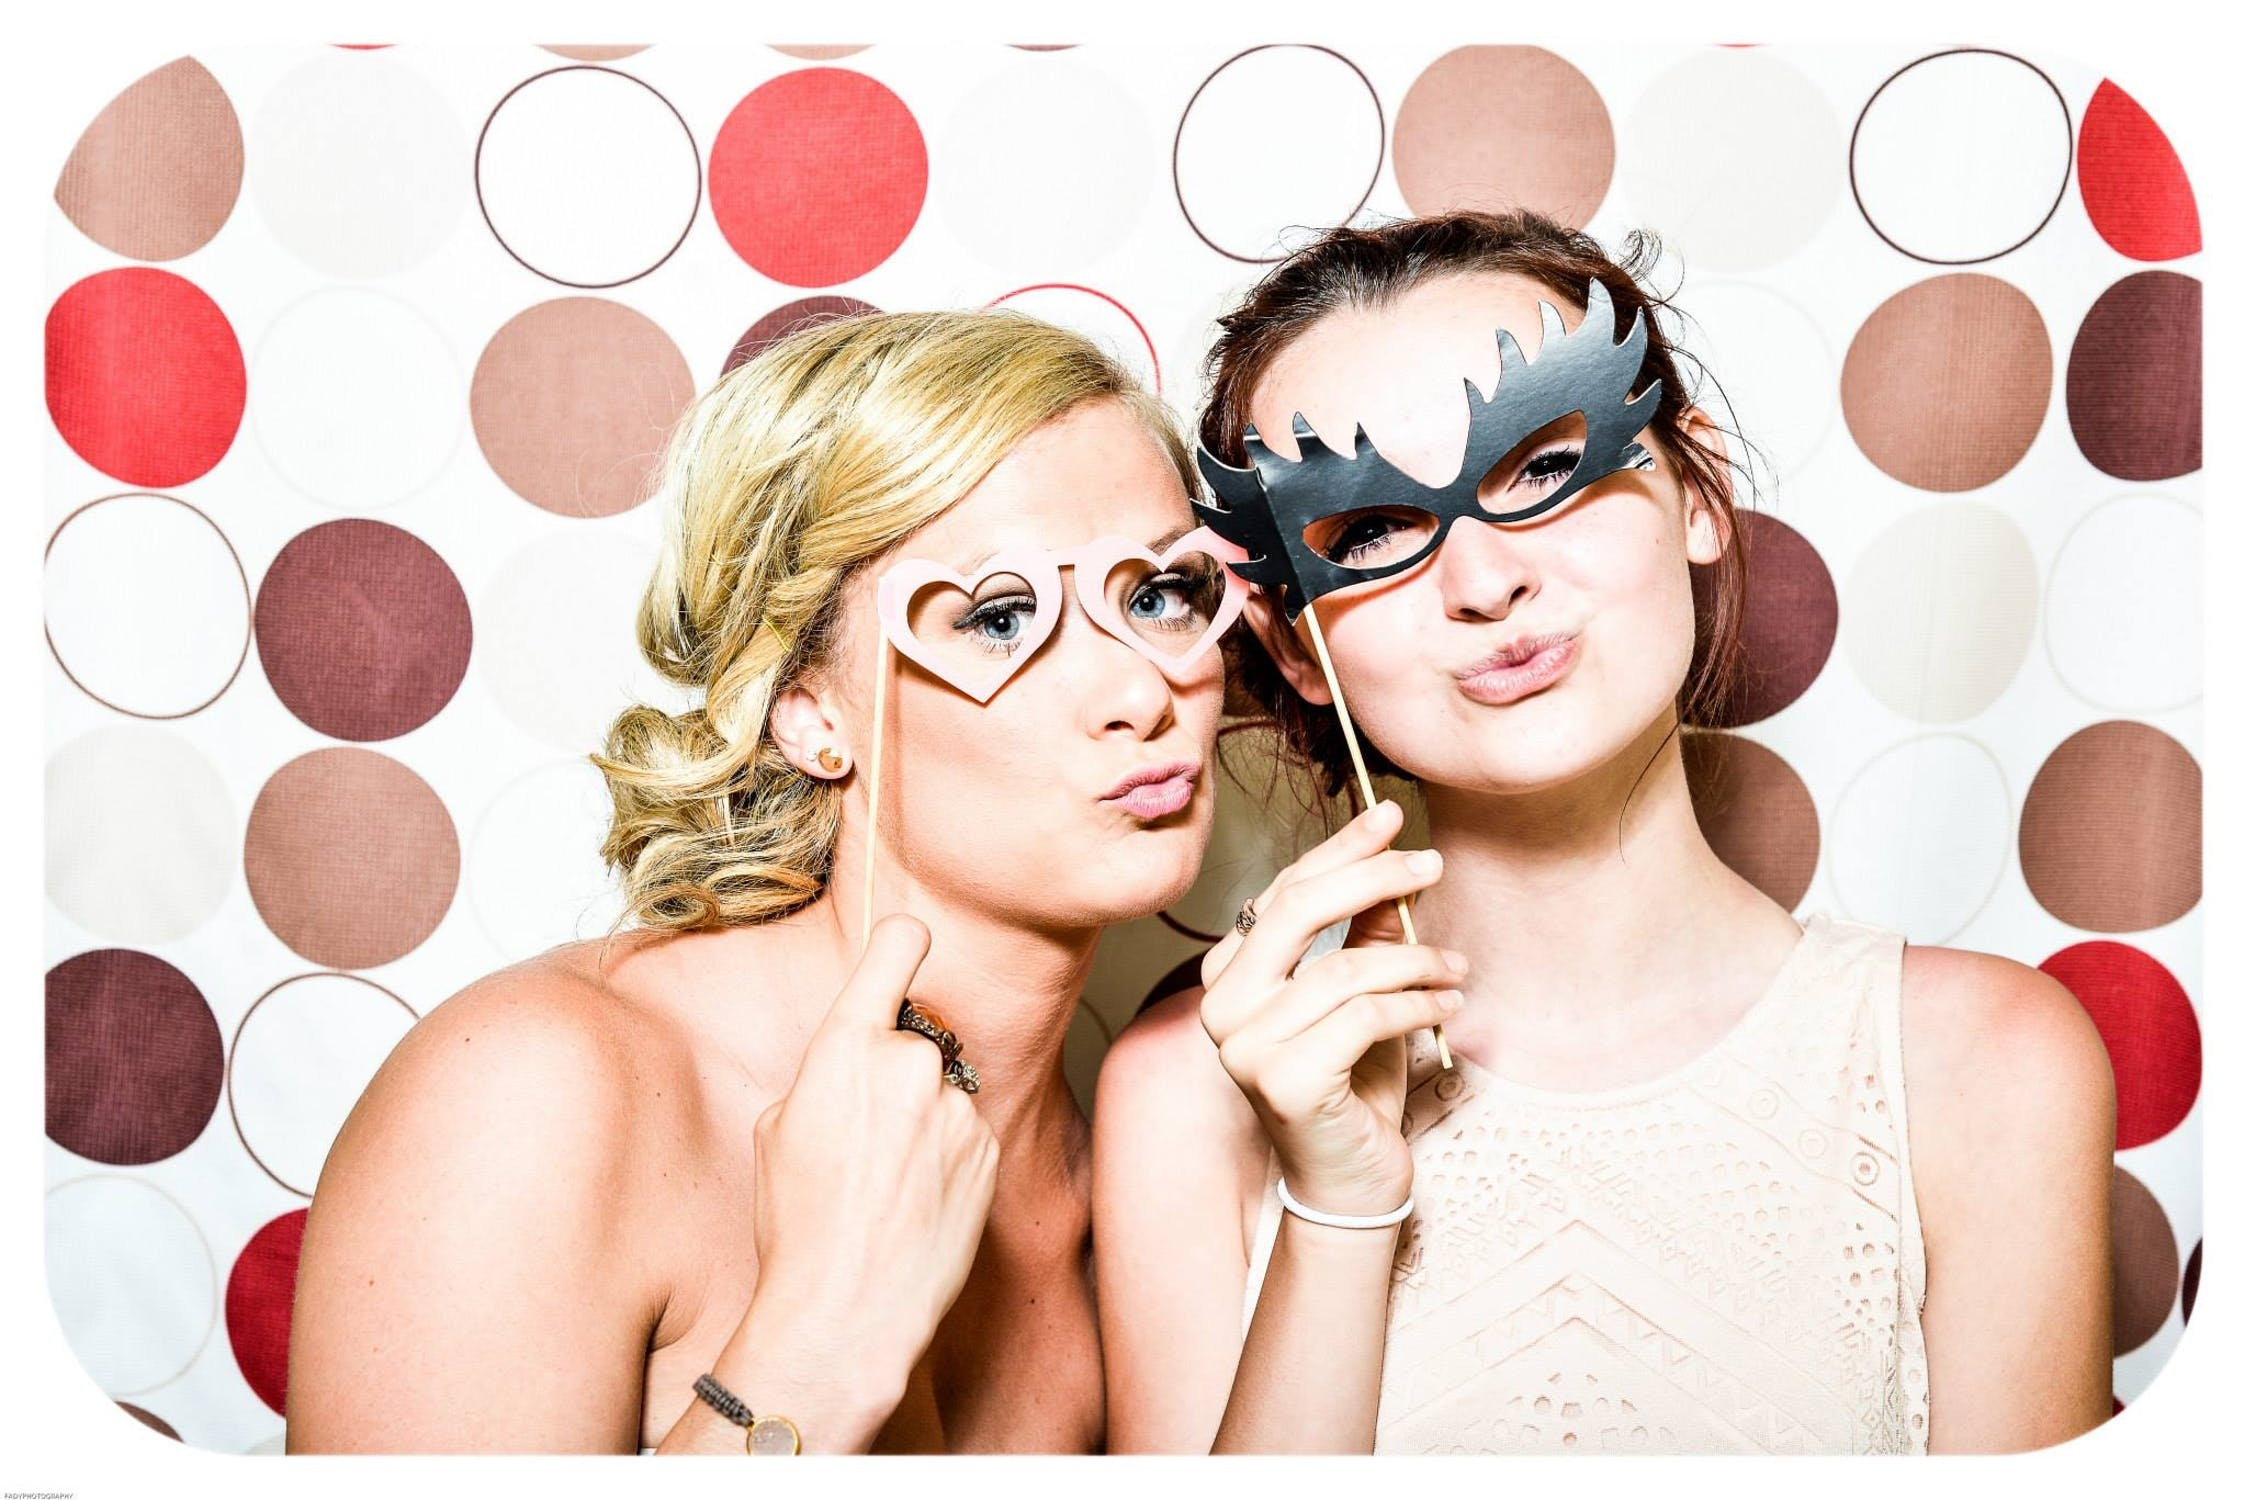 Everything You Need to Know About Hosting Bachelor/Bachelorette Party